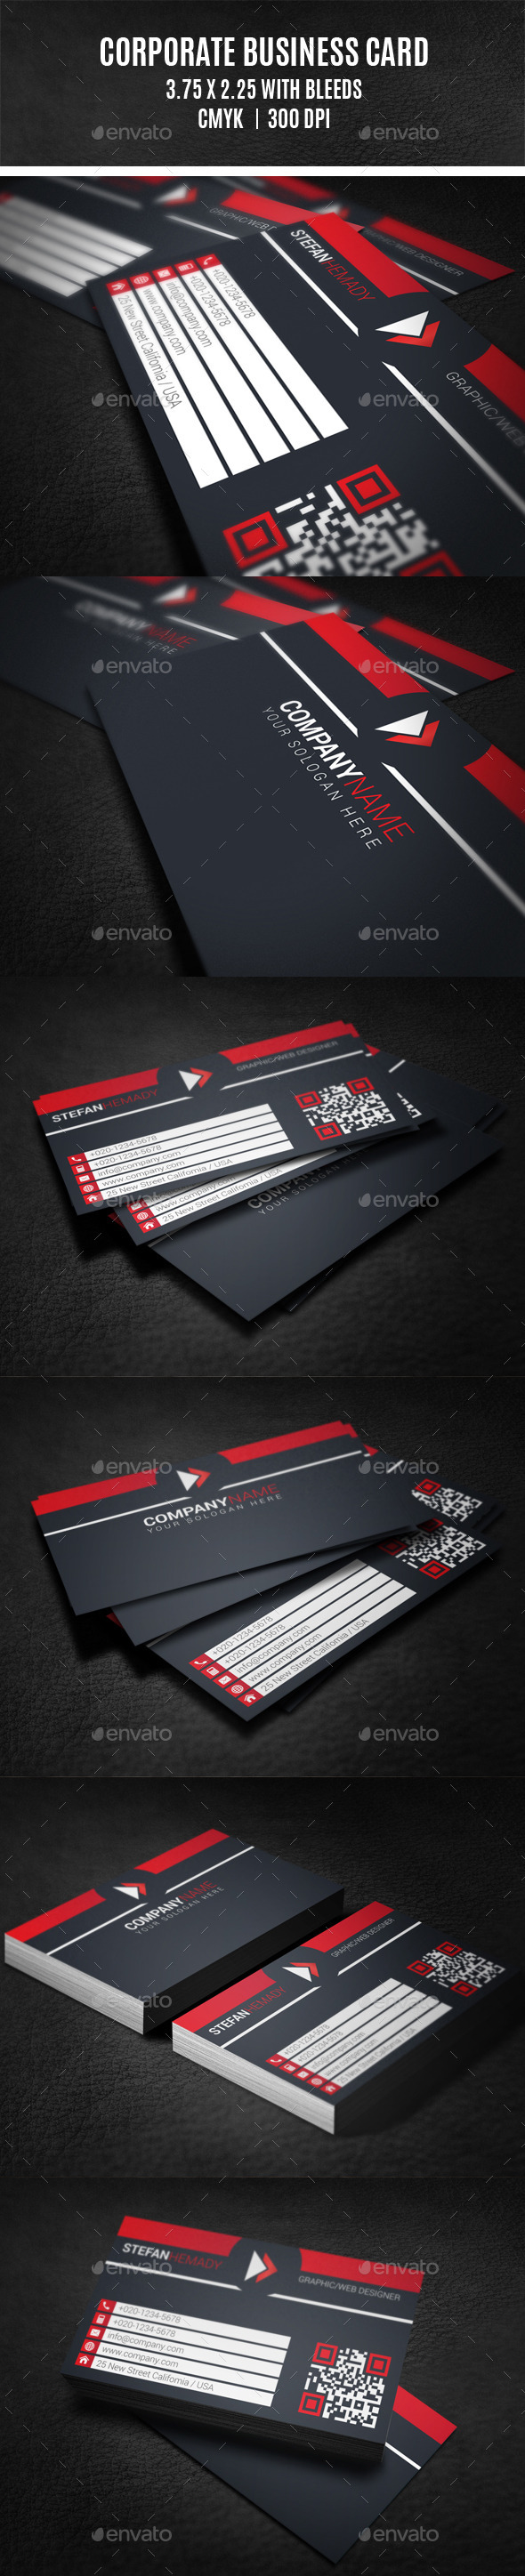 GraphicRiver Corporate Business Card 10023966